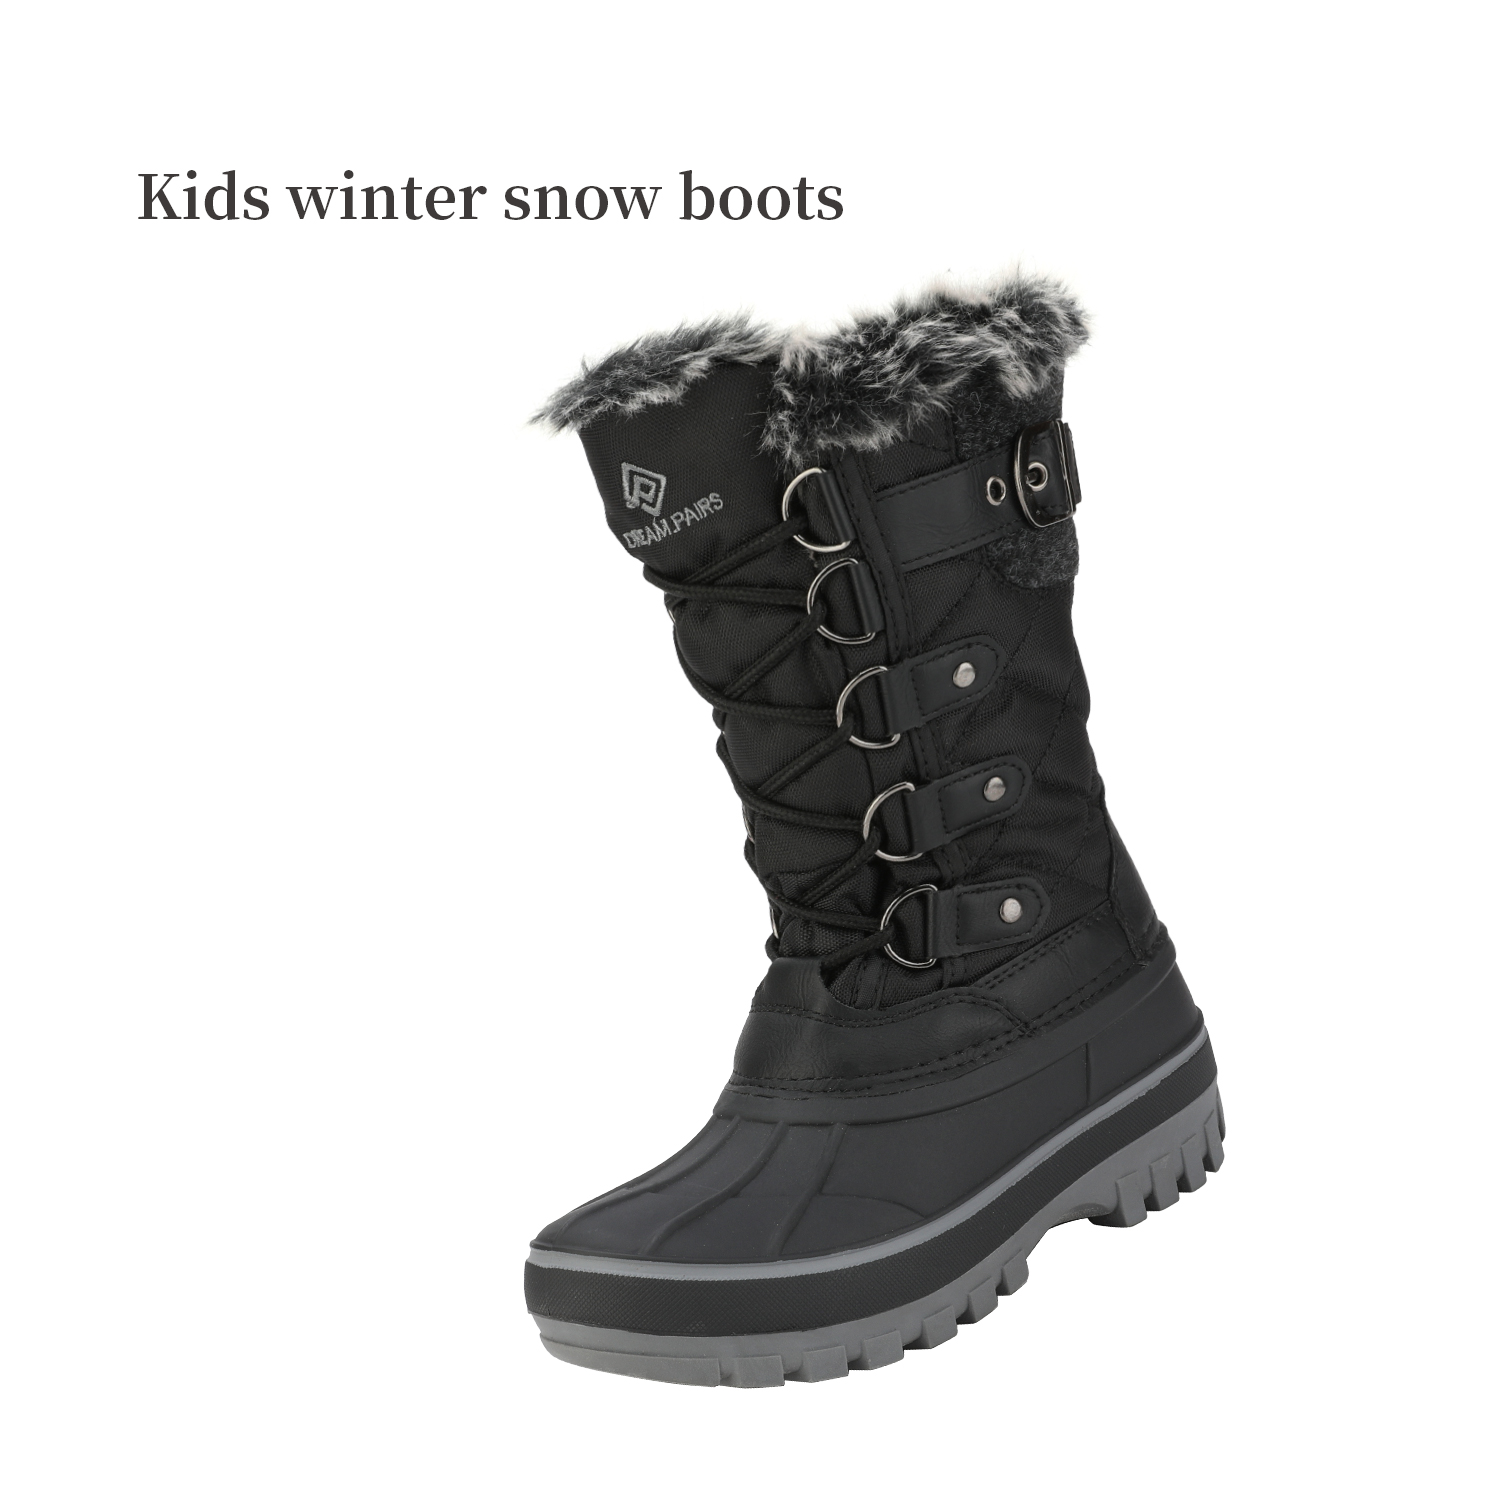 DREAM PAIRS Toddler Kids Winter Sneakers Shoes Girls Boys Warm  Snow Ankle Boots